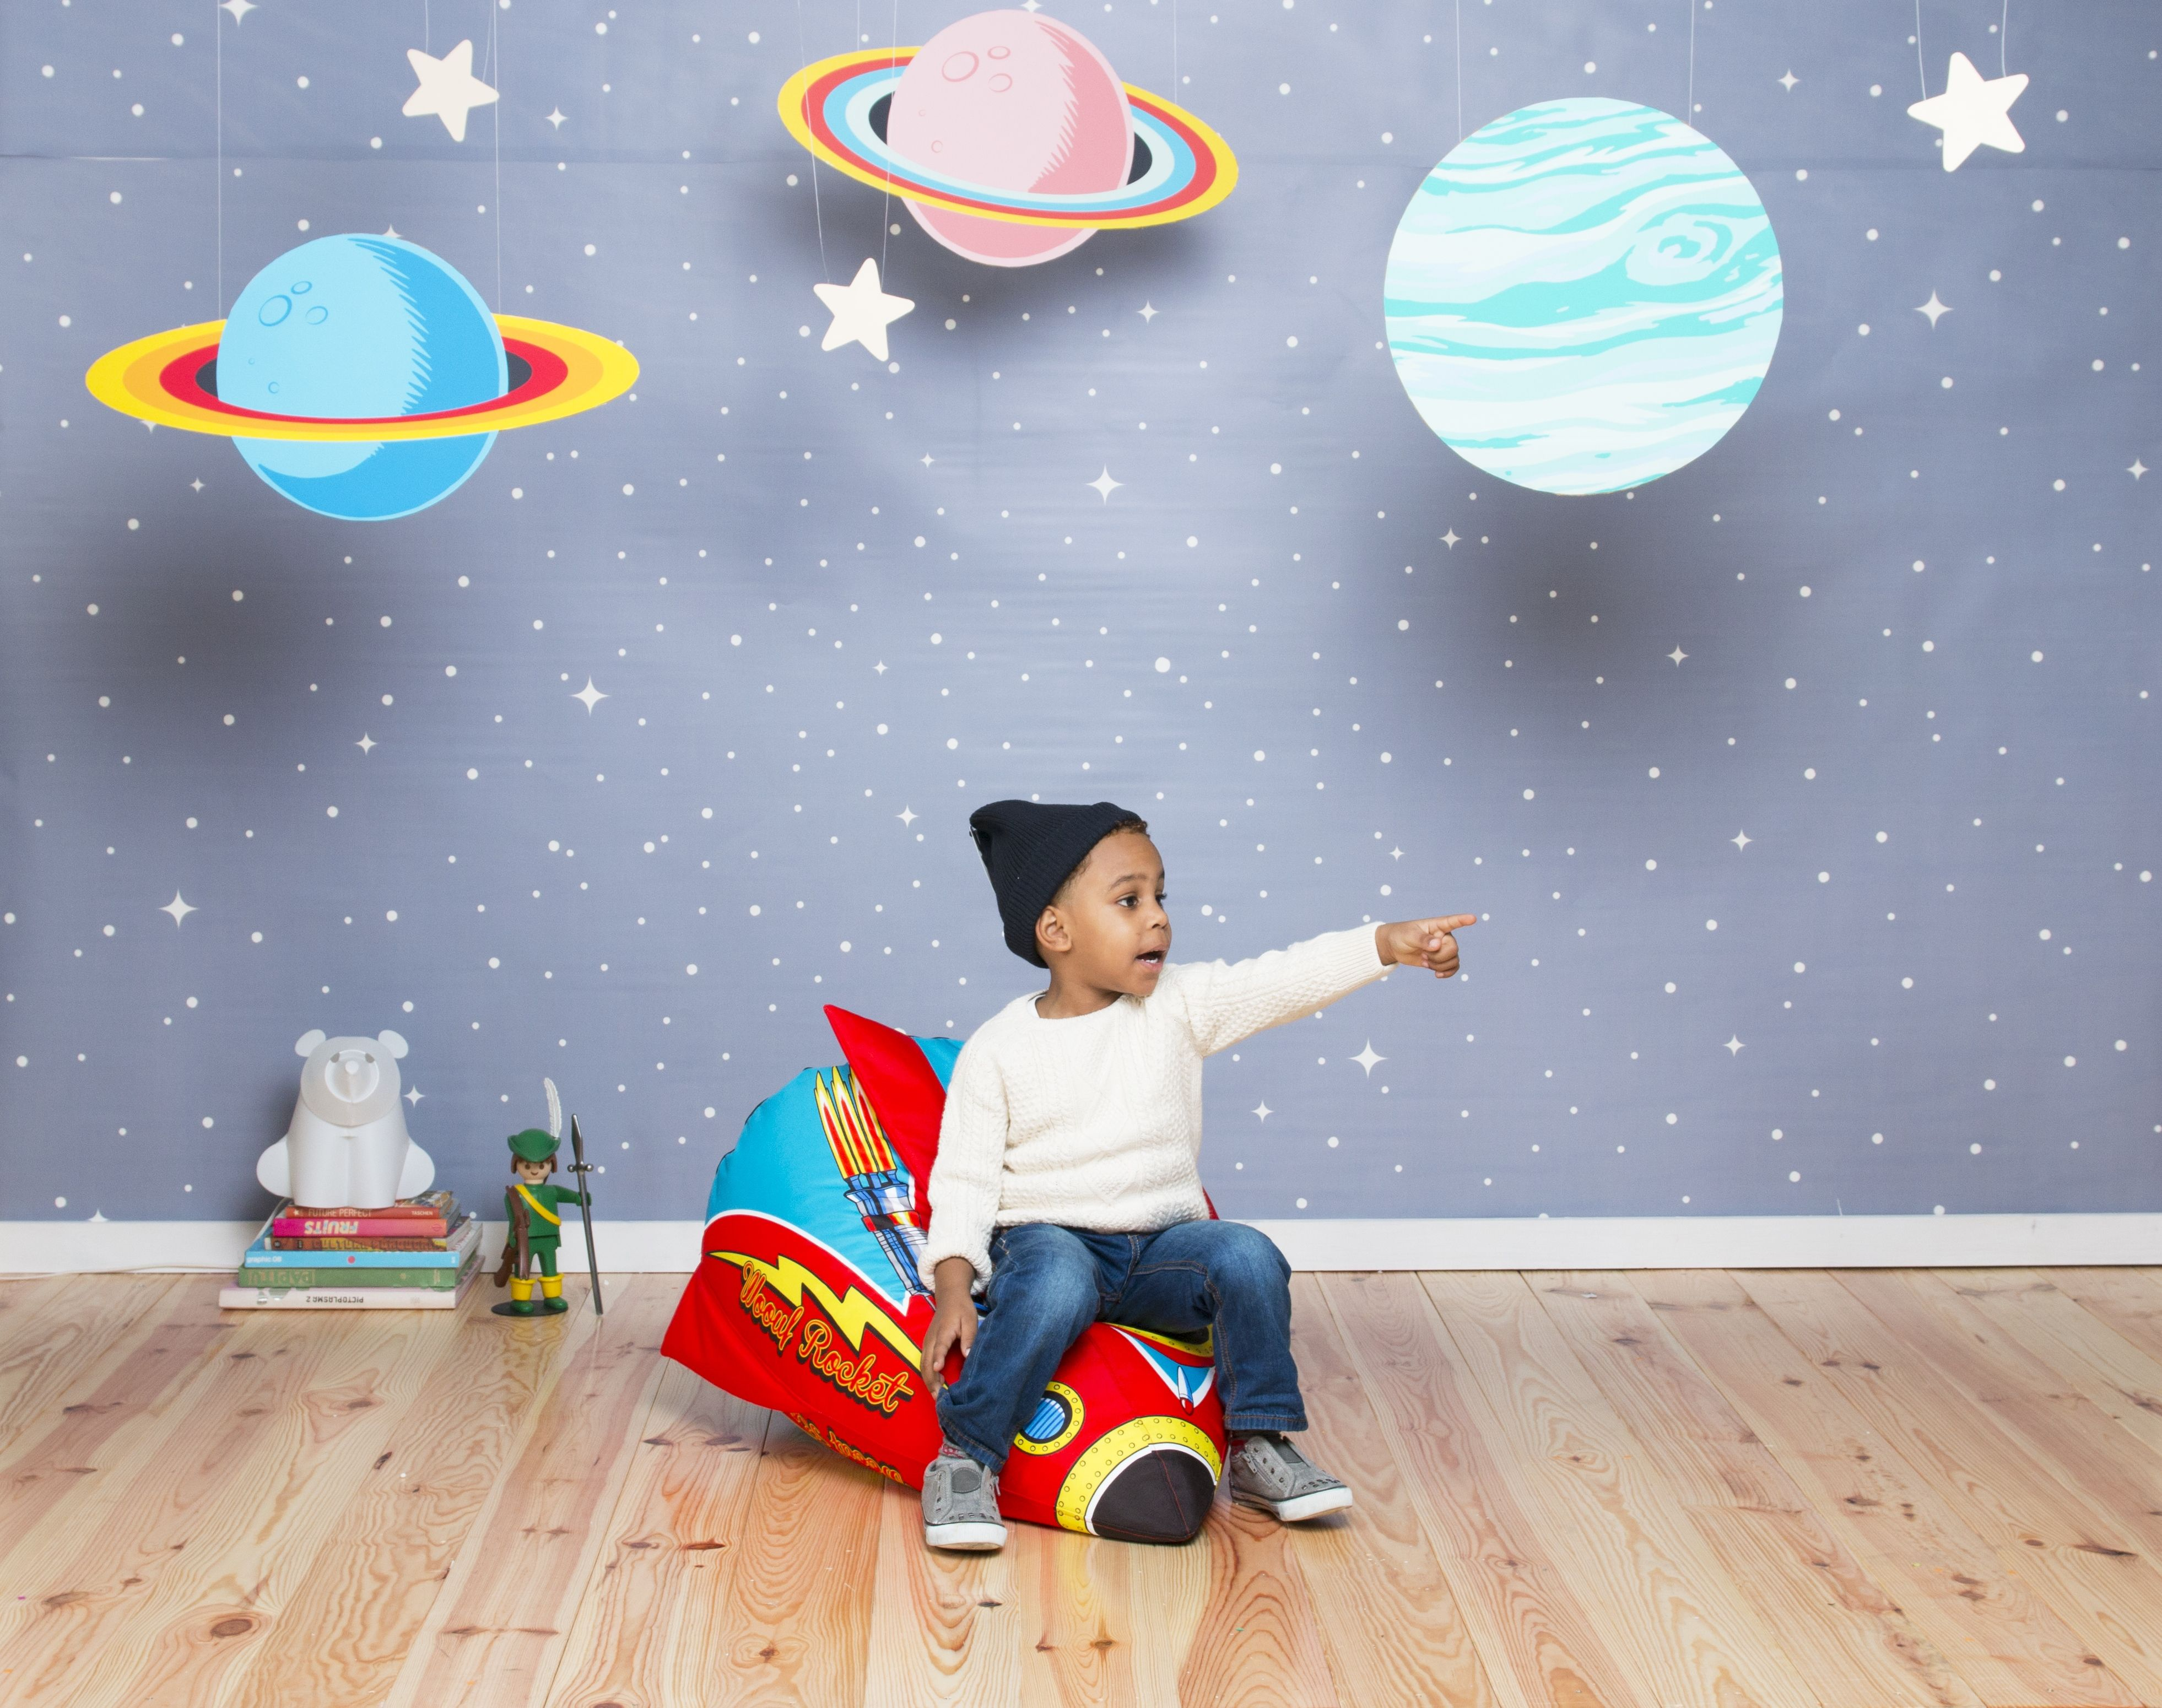 Bean Bags For Kids Room Part - 43: Rocket Kids Bean Bag | Space Themed Room | Kids Chair | Space Rocket |  Available